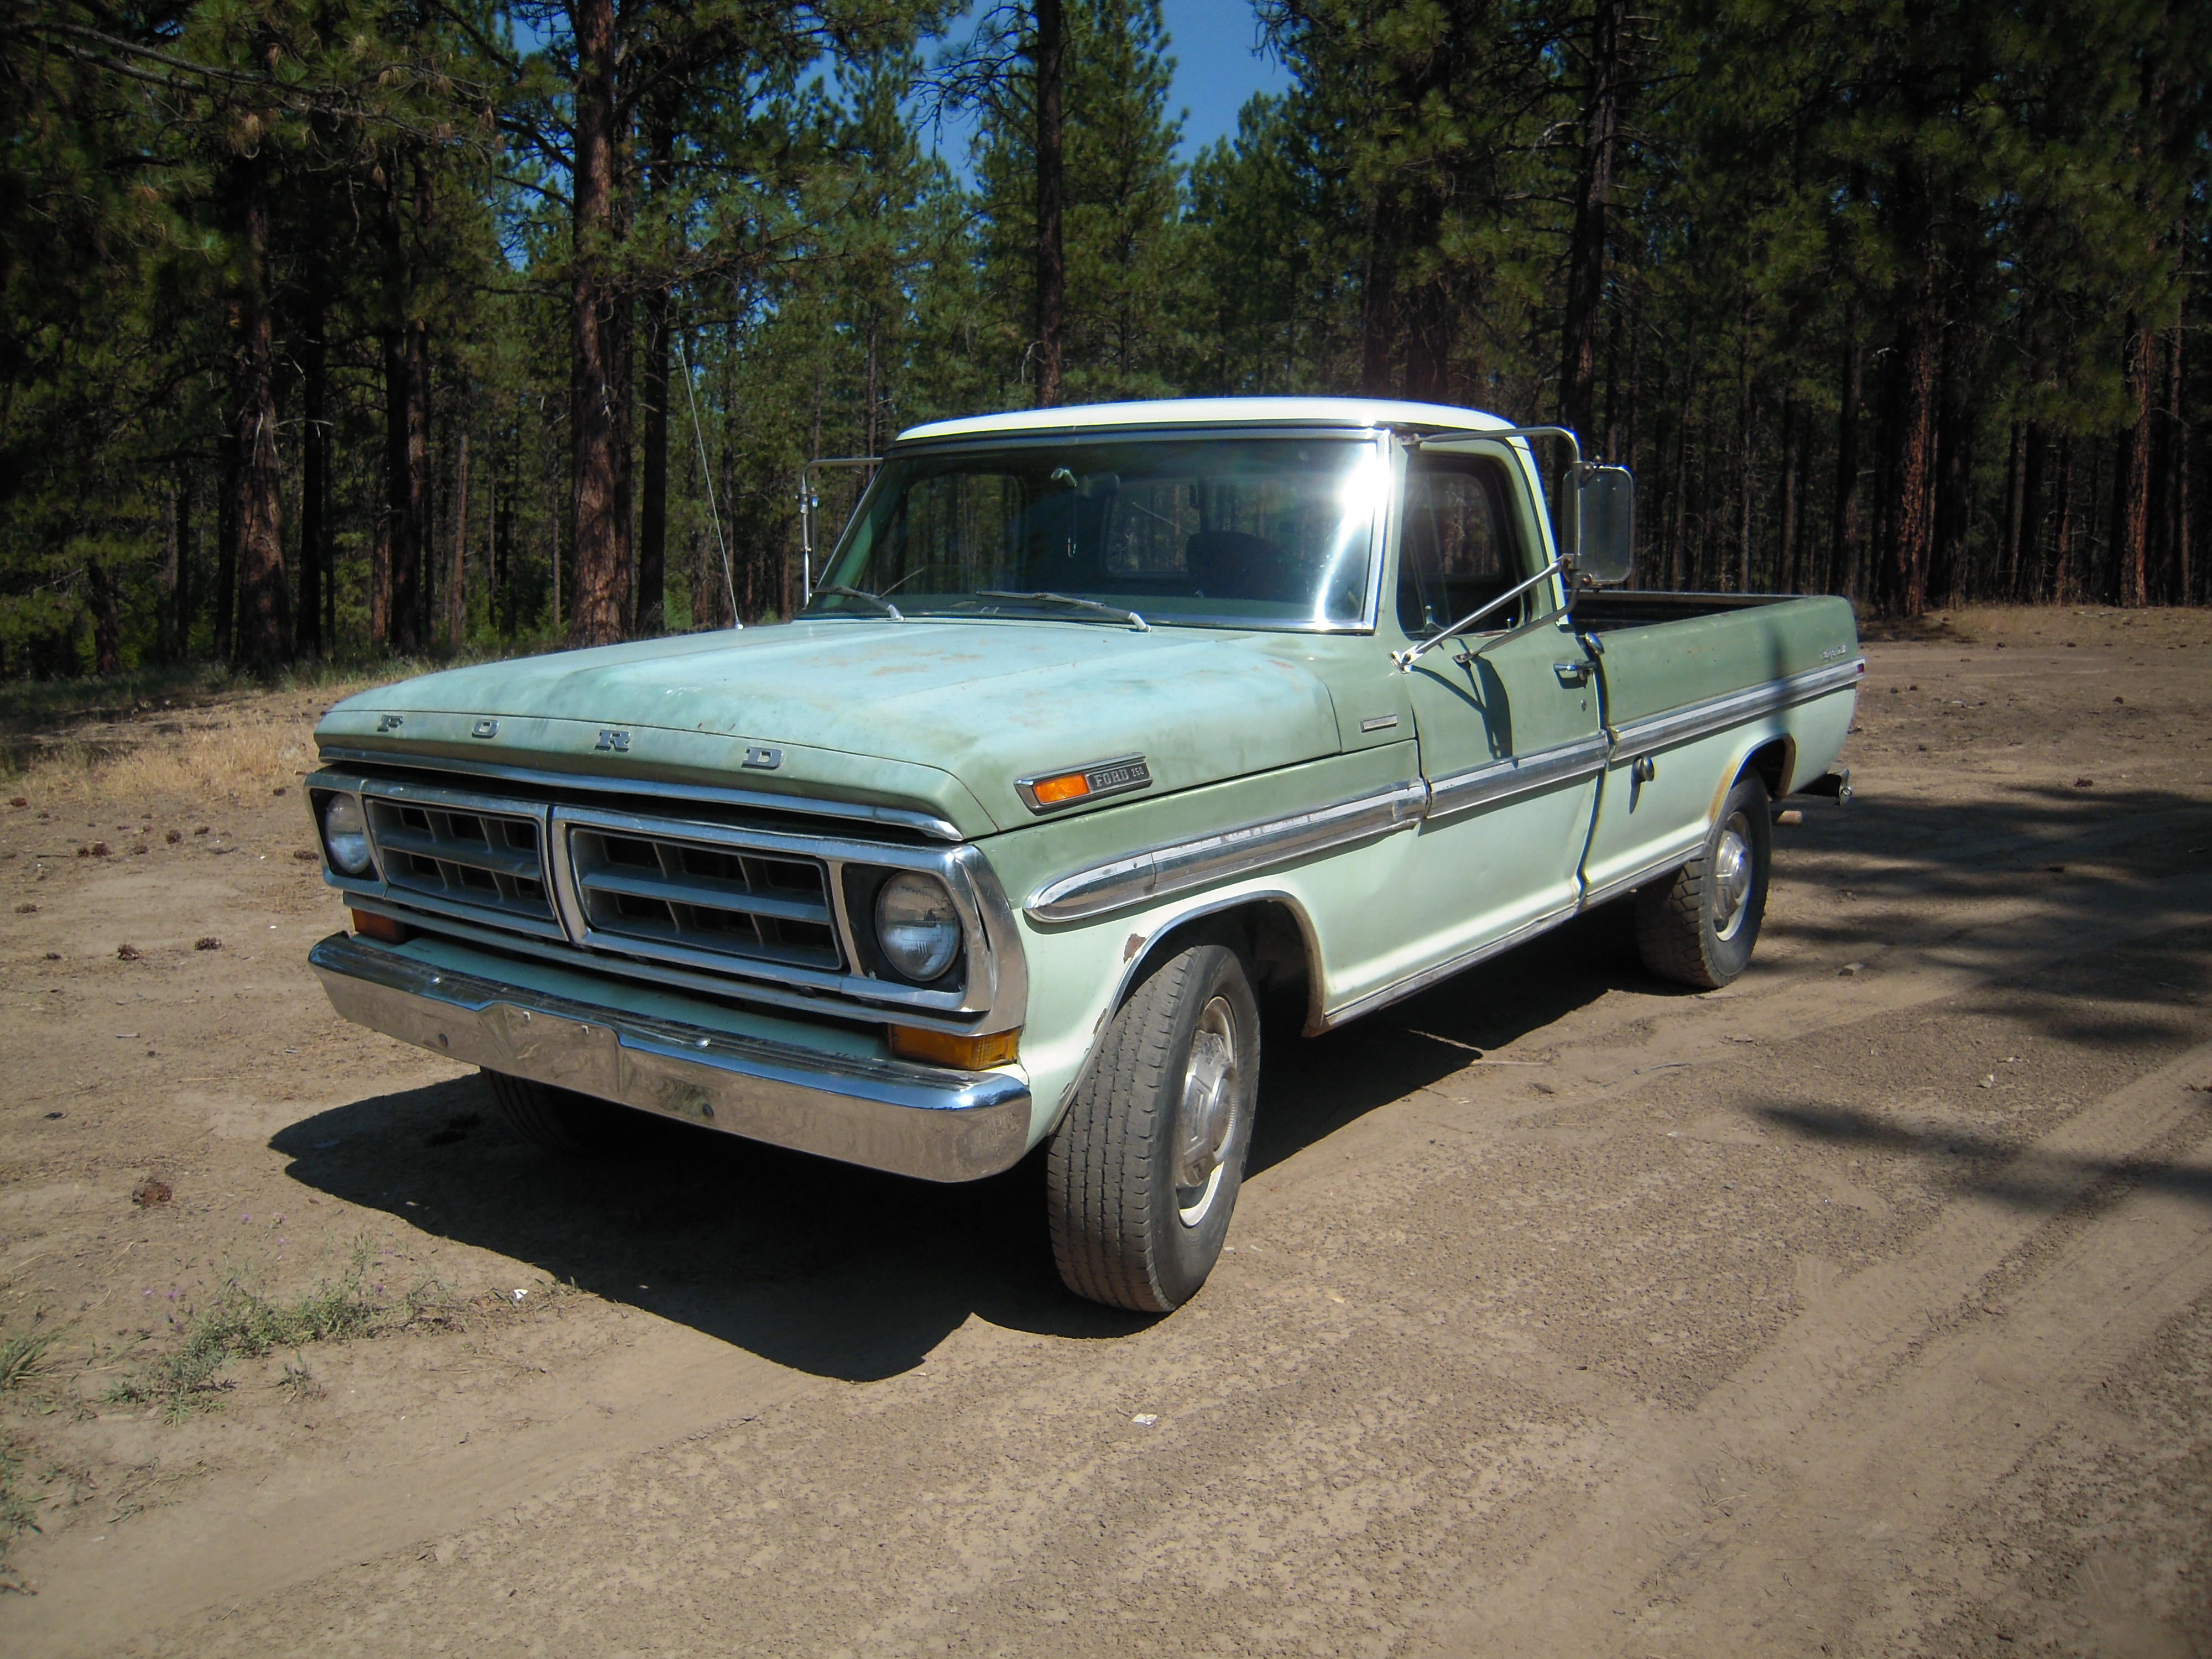 1970 Ford F-250 Camper Special